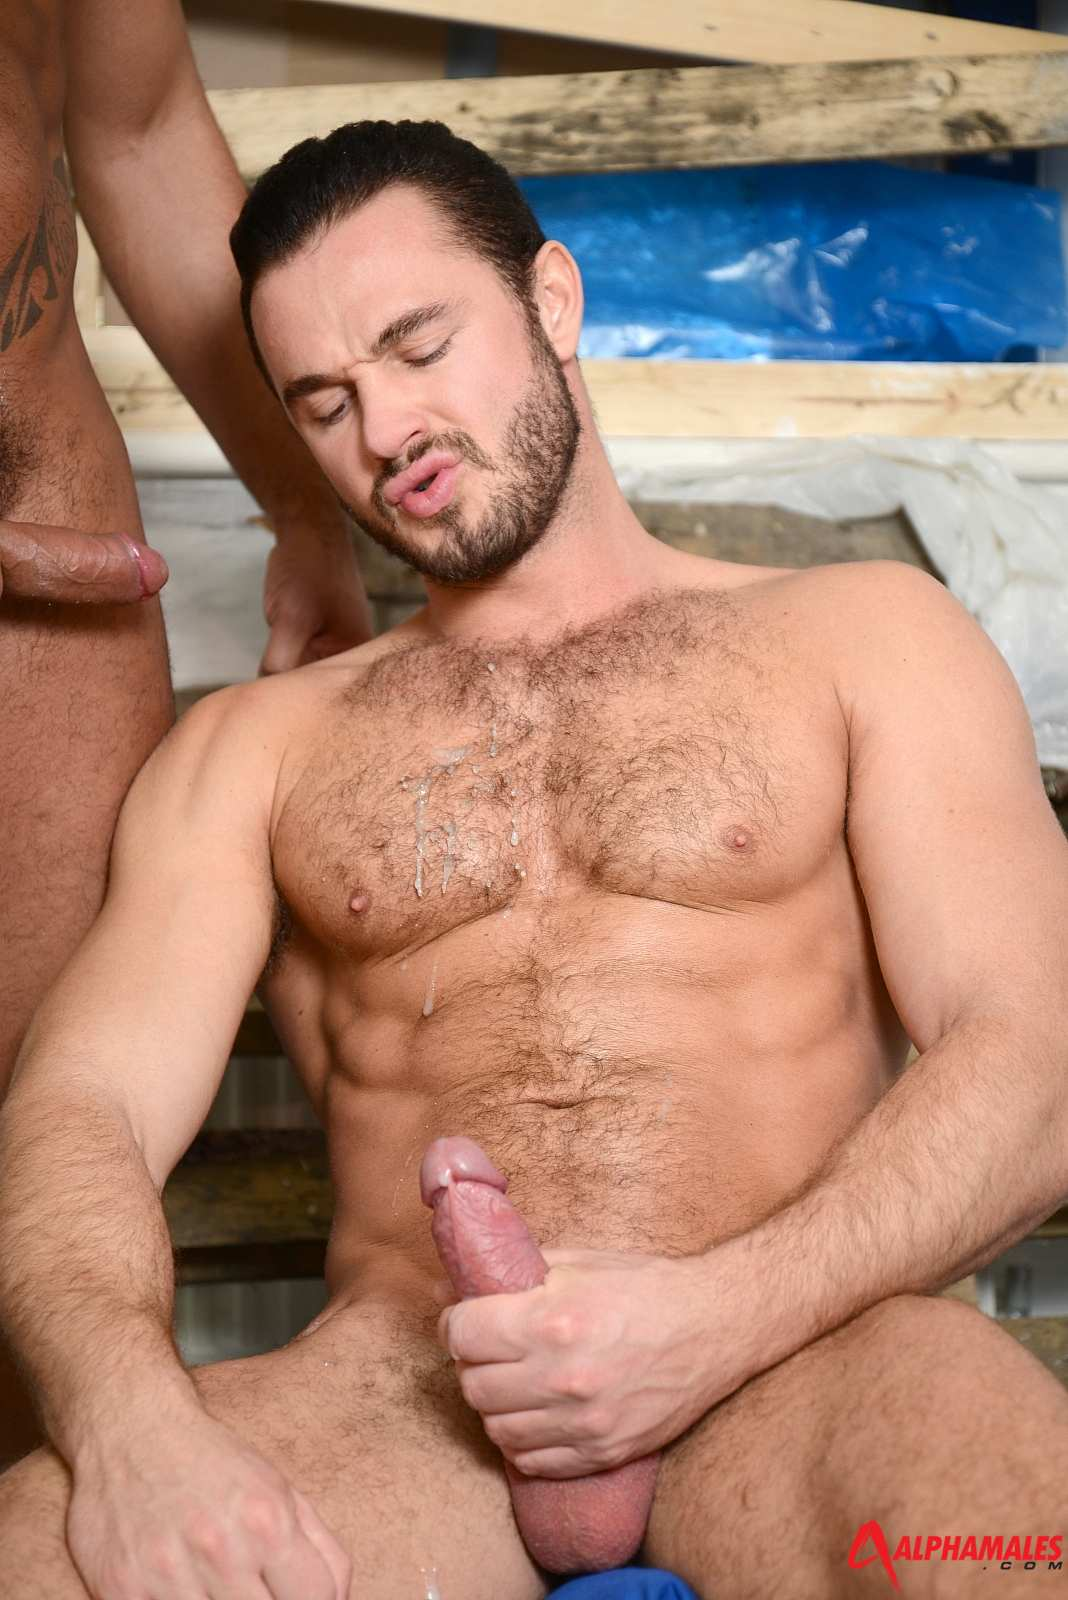 Man fucking woman hot hairy